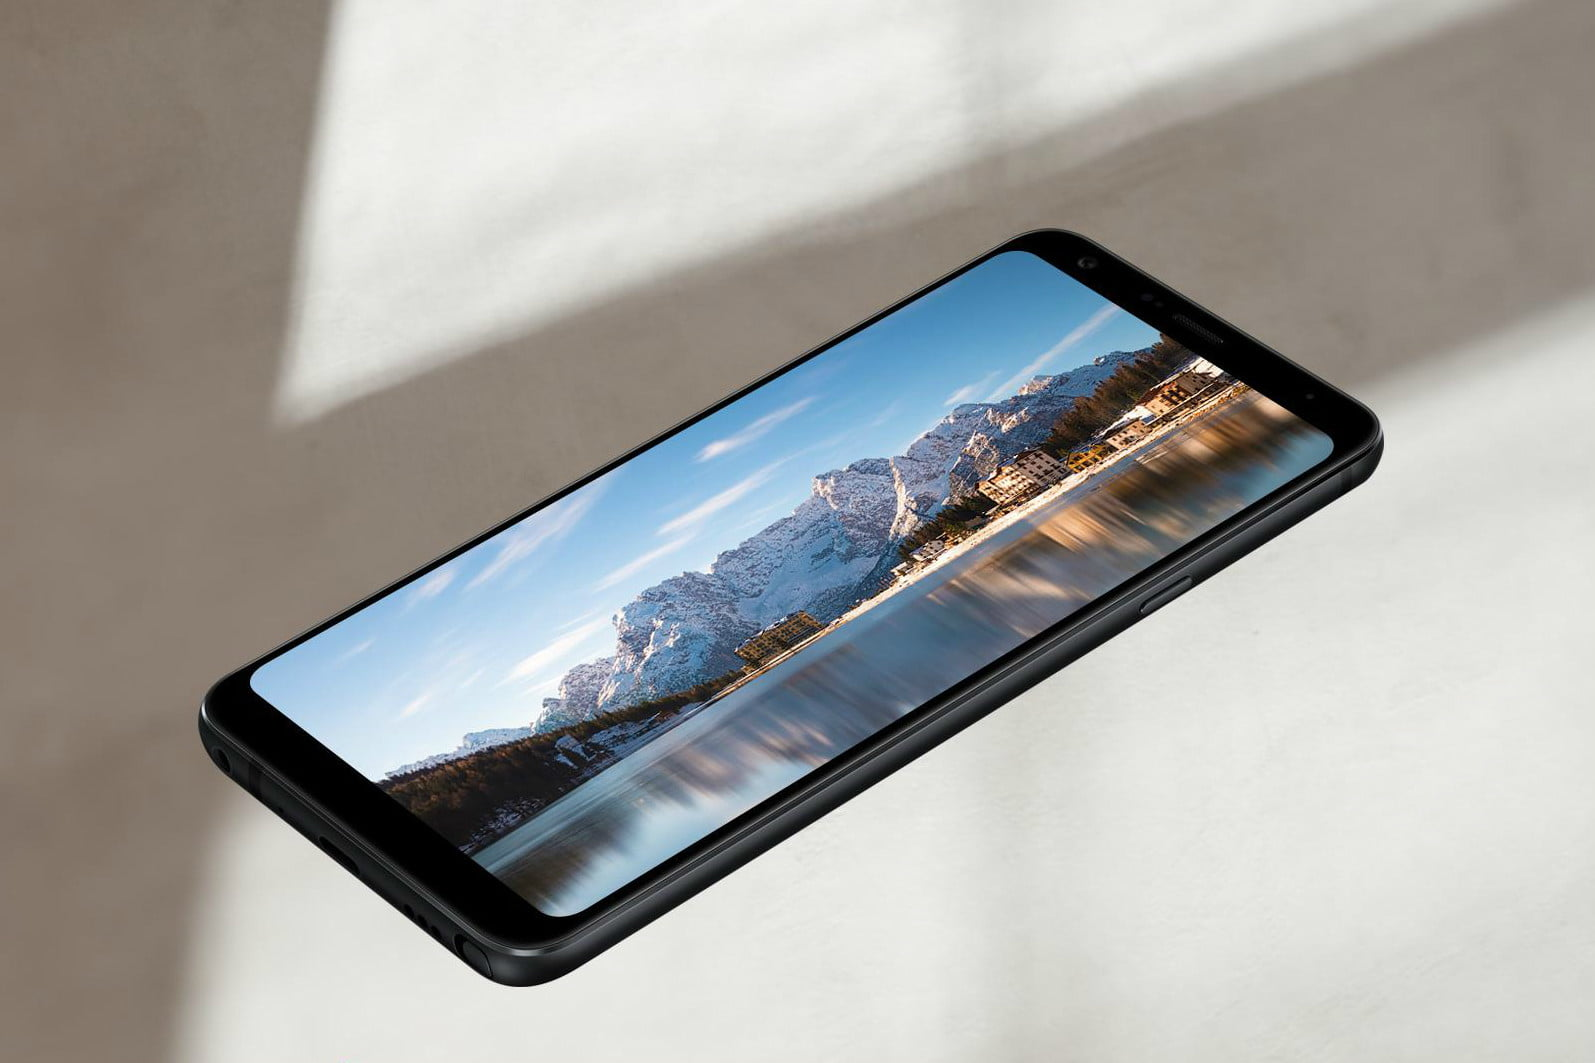 Get the LG Stylo 4 at its most affordable price of $120 at Best Buy